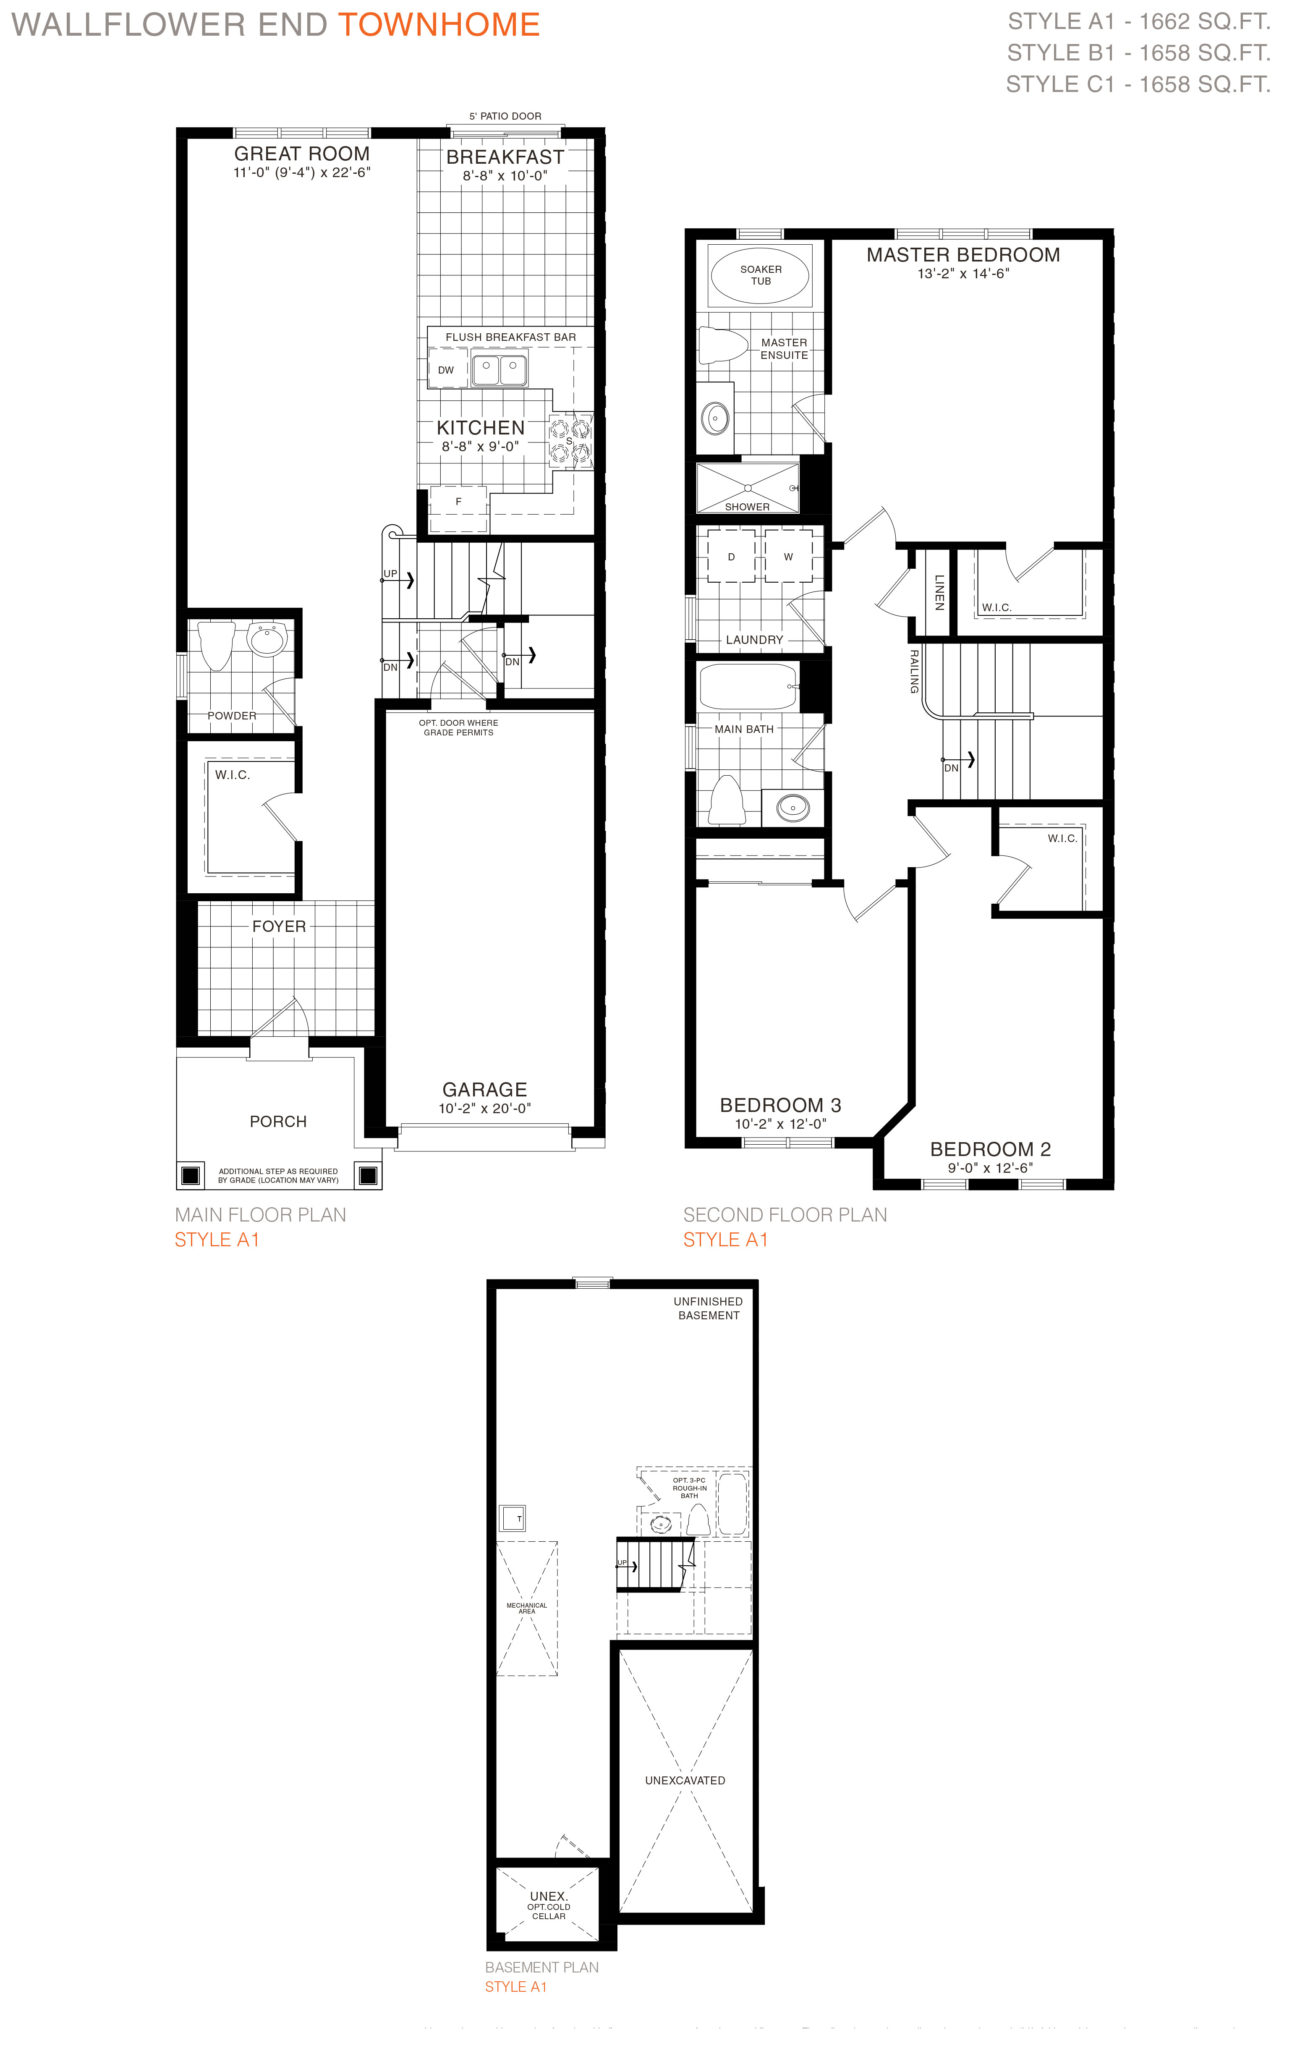 Wallflower-End-Townhome-cw-wallflower-end-townhome-product-2